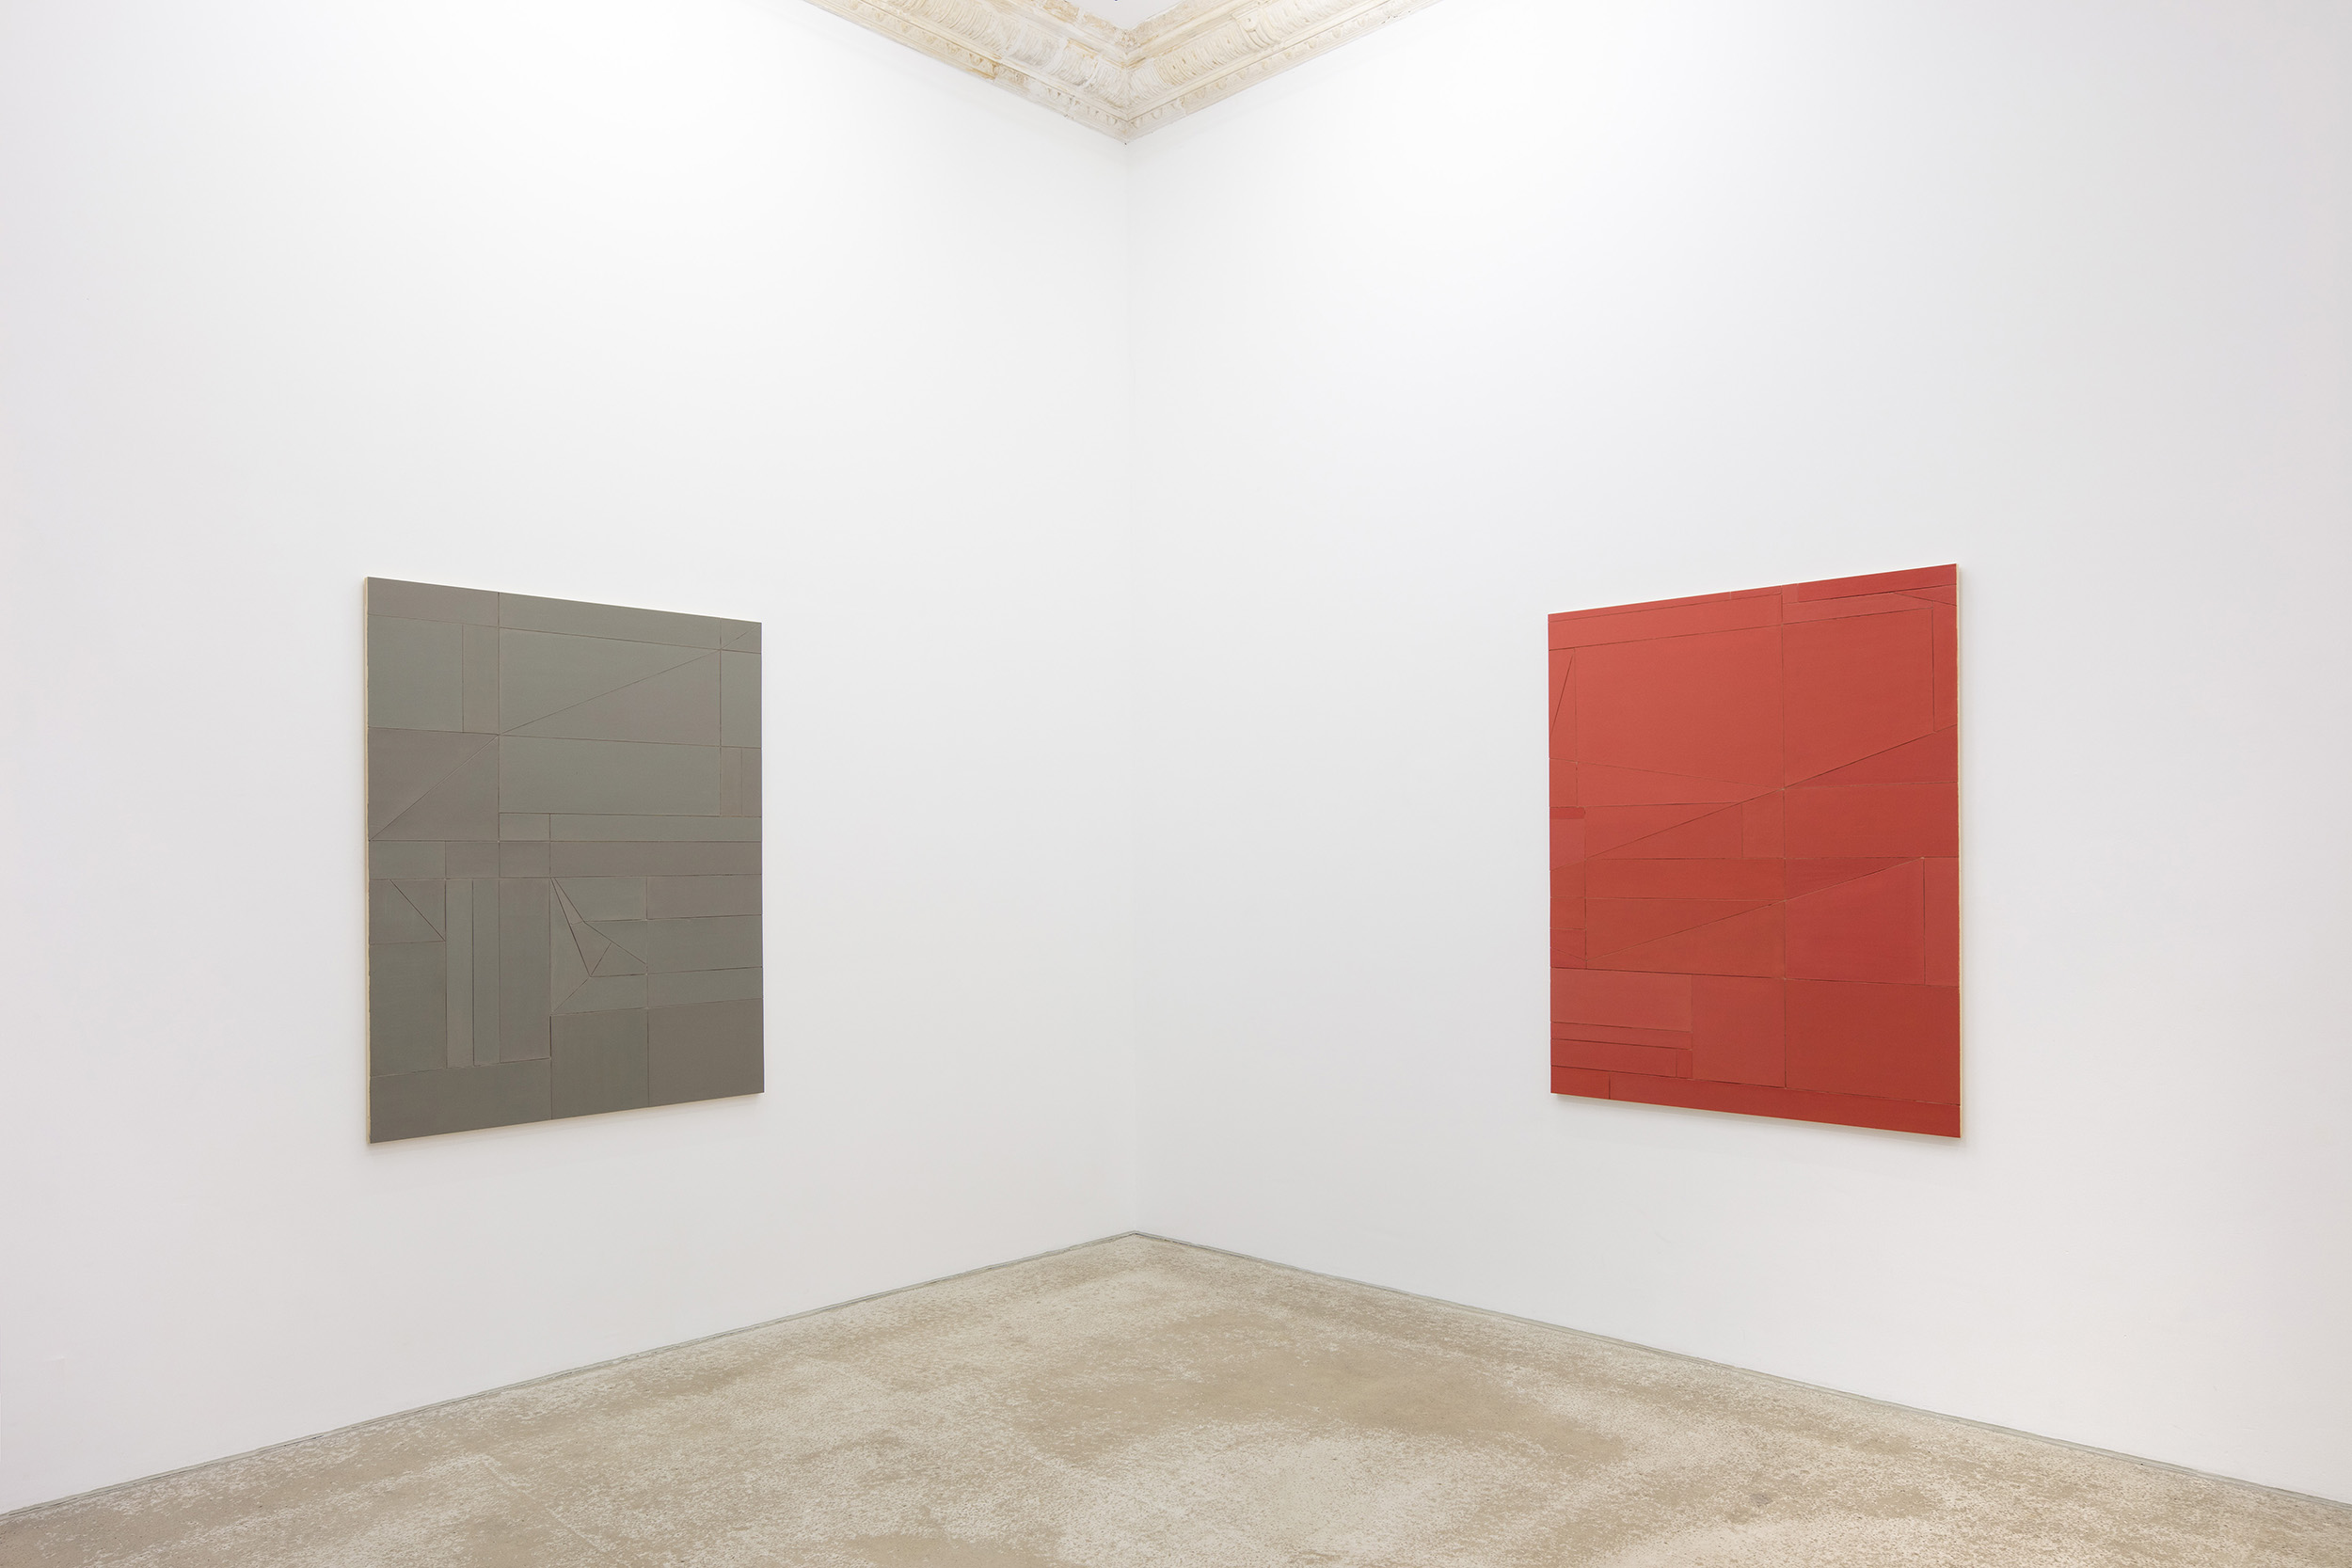 2 - Florian Schmit at Daniel Marzona Berlin - suggested by Ivan Seal